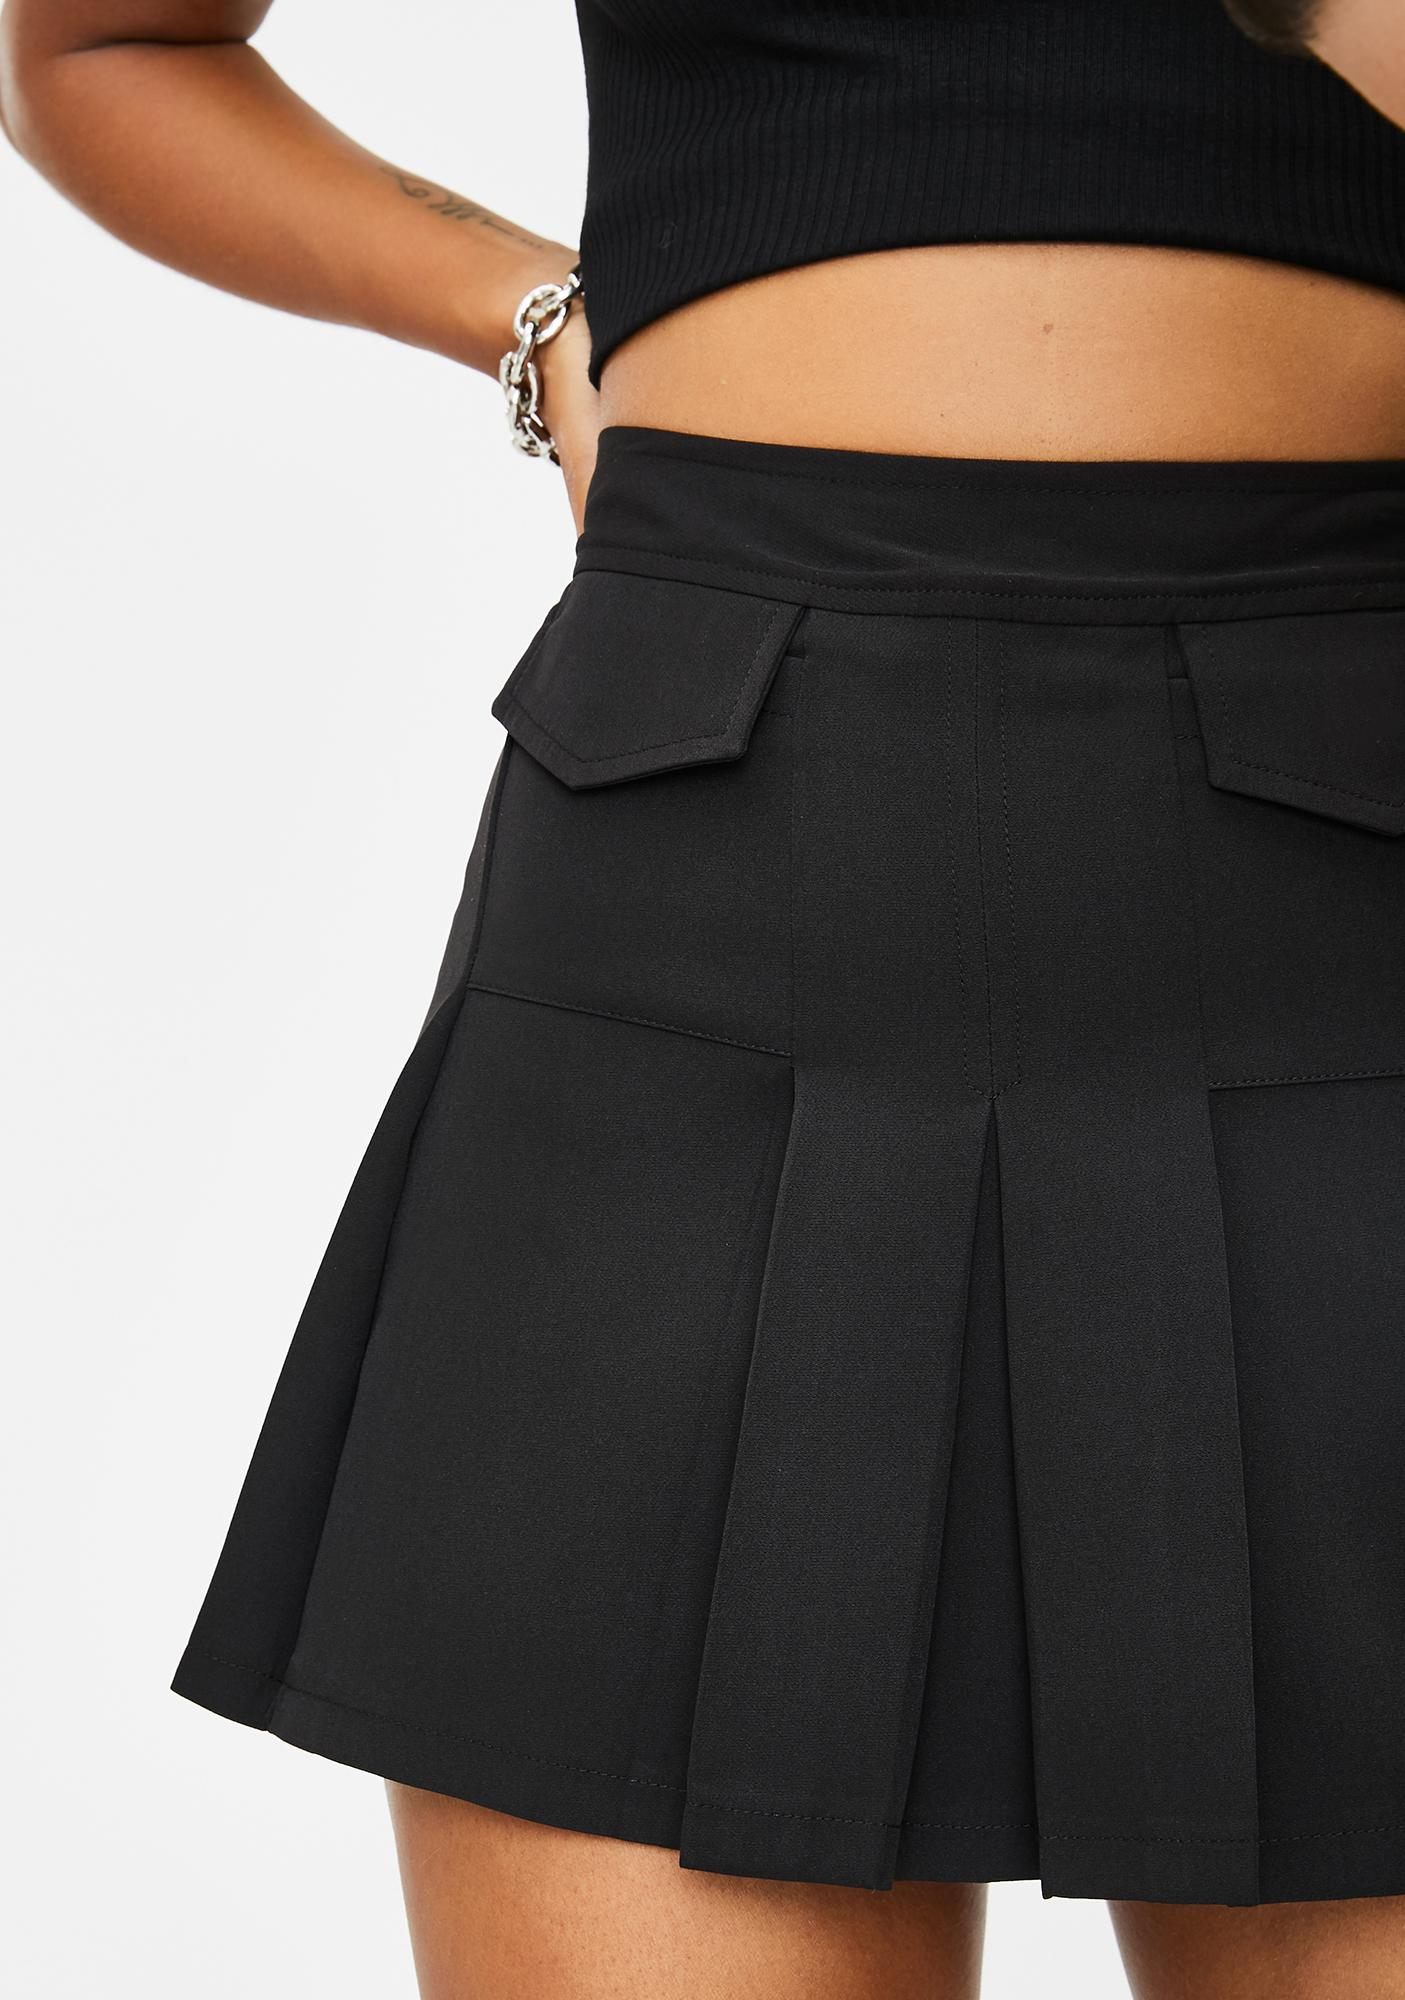 Hot For Teacher Pleated Skirt by Current Mood